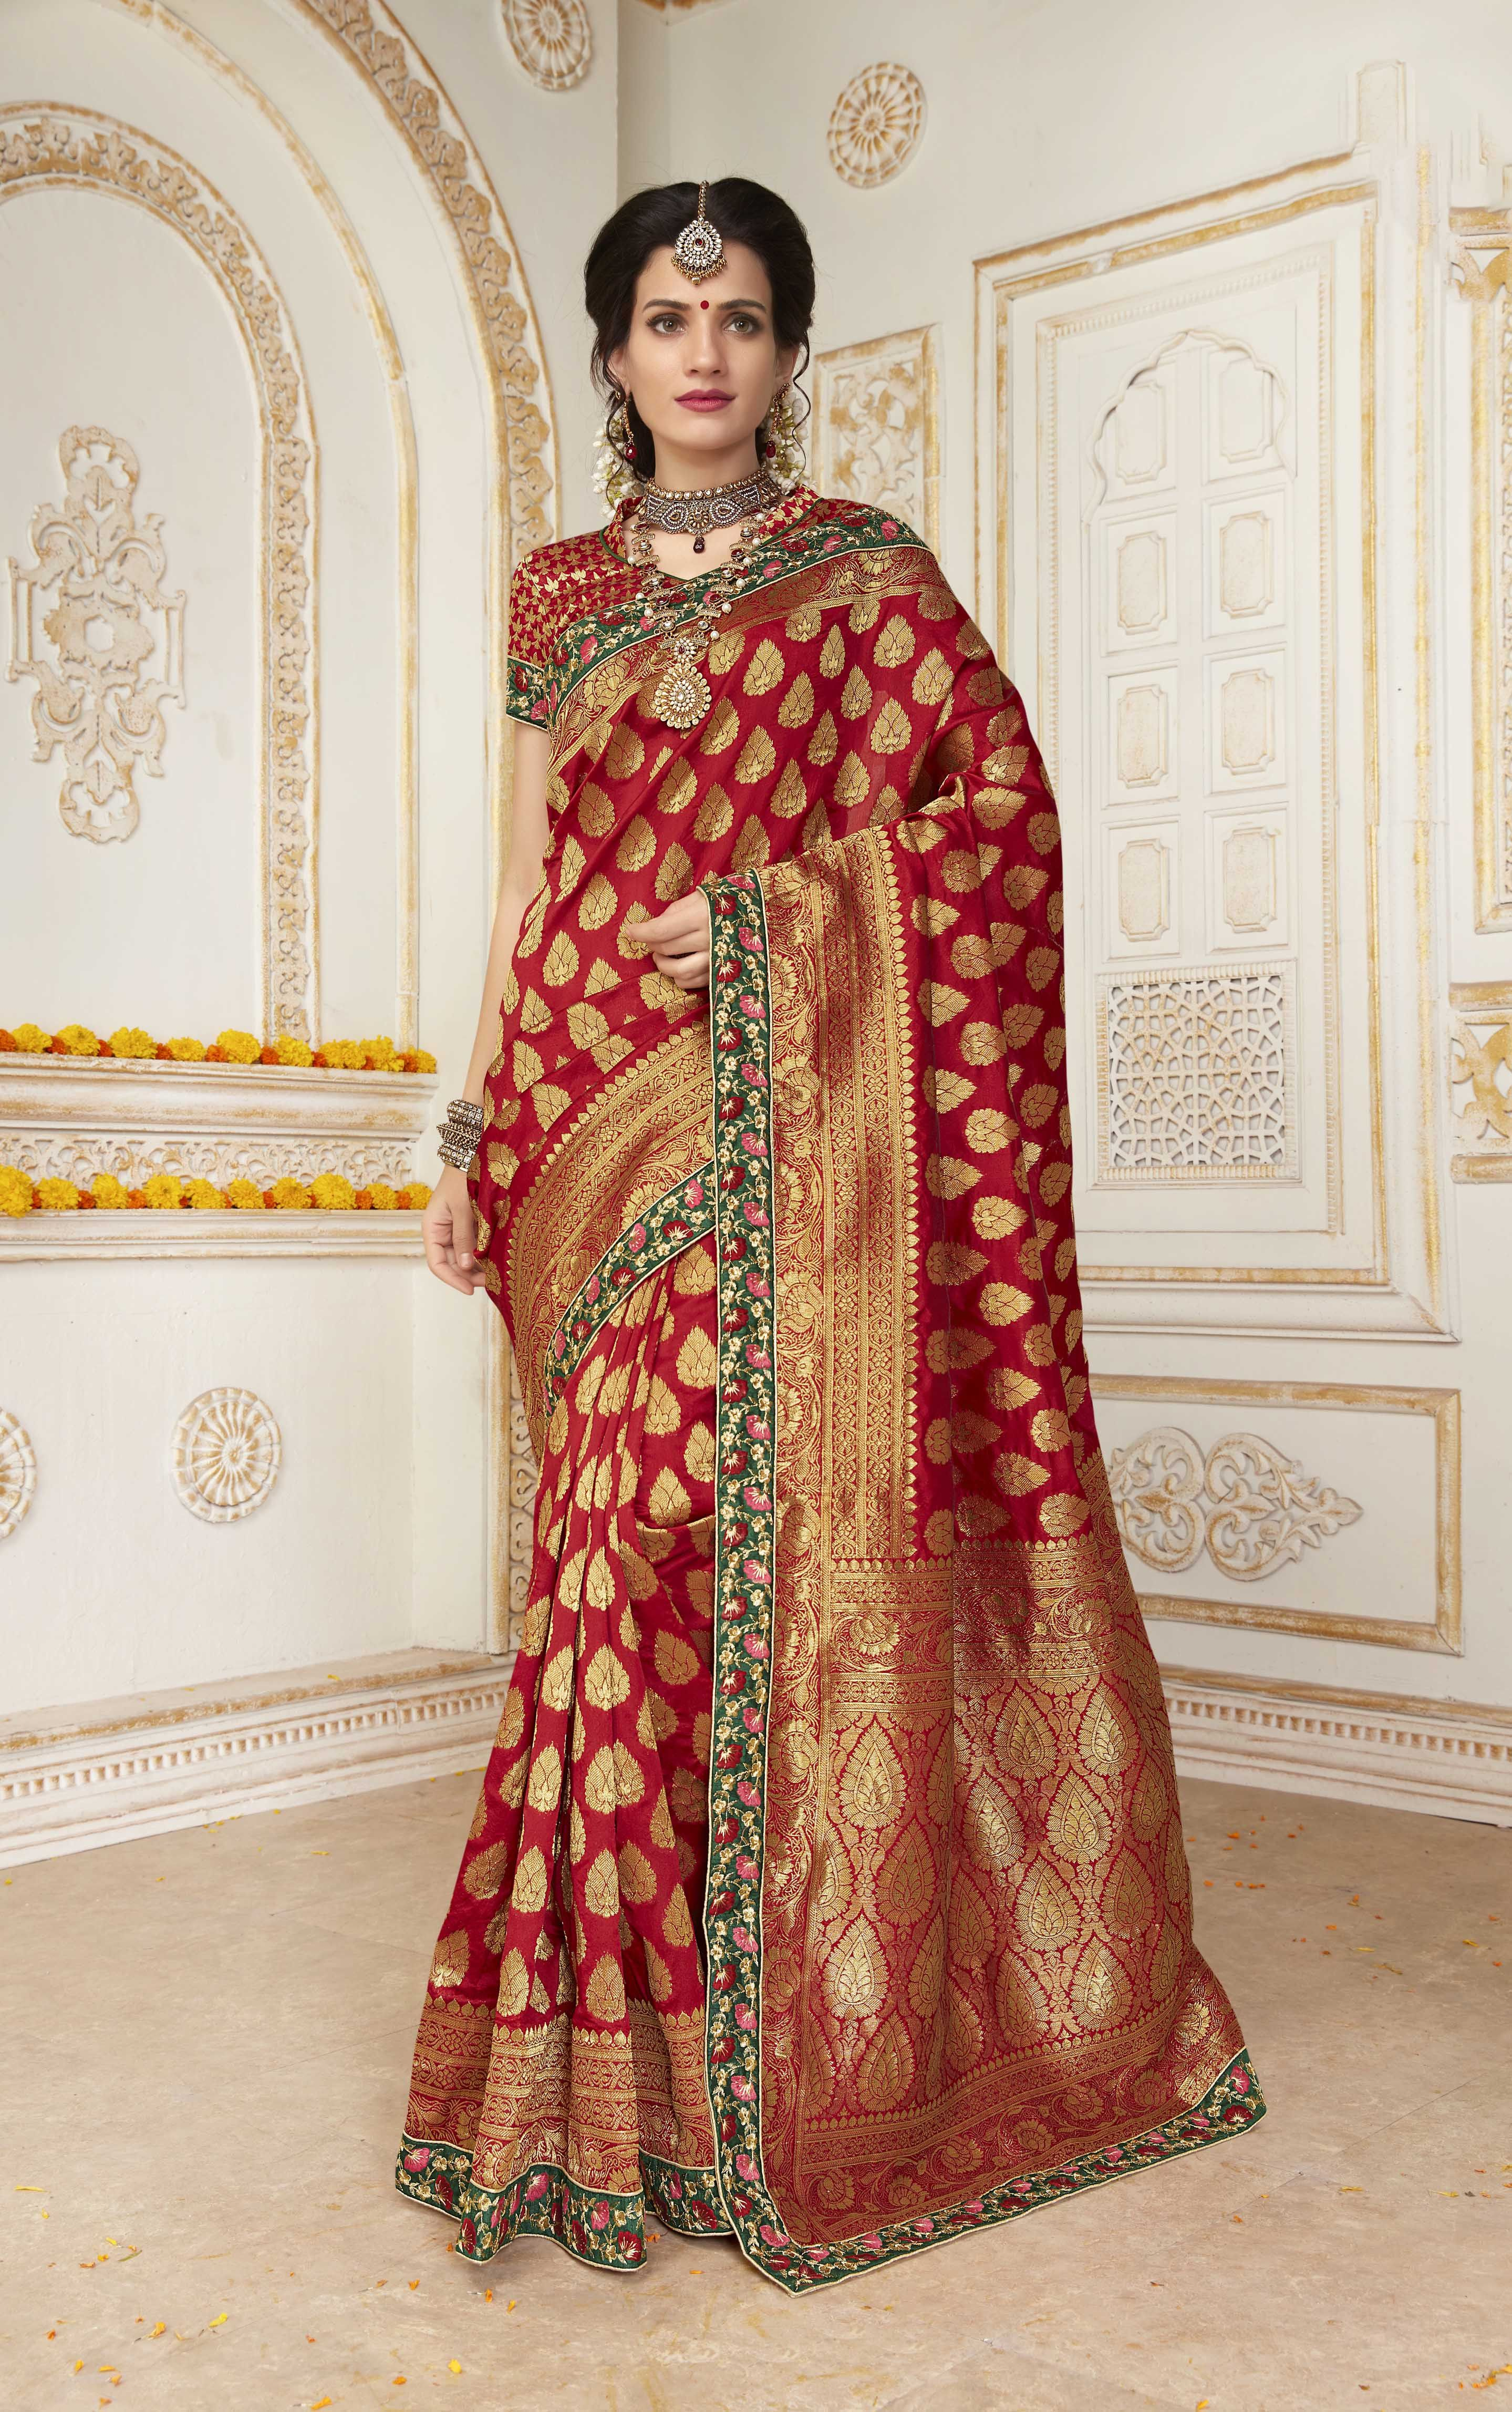 8792710e7930c Buy online Red colour Resham   Jari Embroidery With Stone Work designer  Traditional Silk saree at joshindia saree